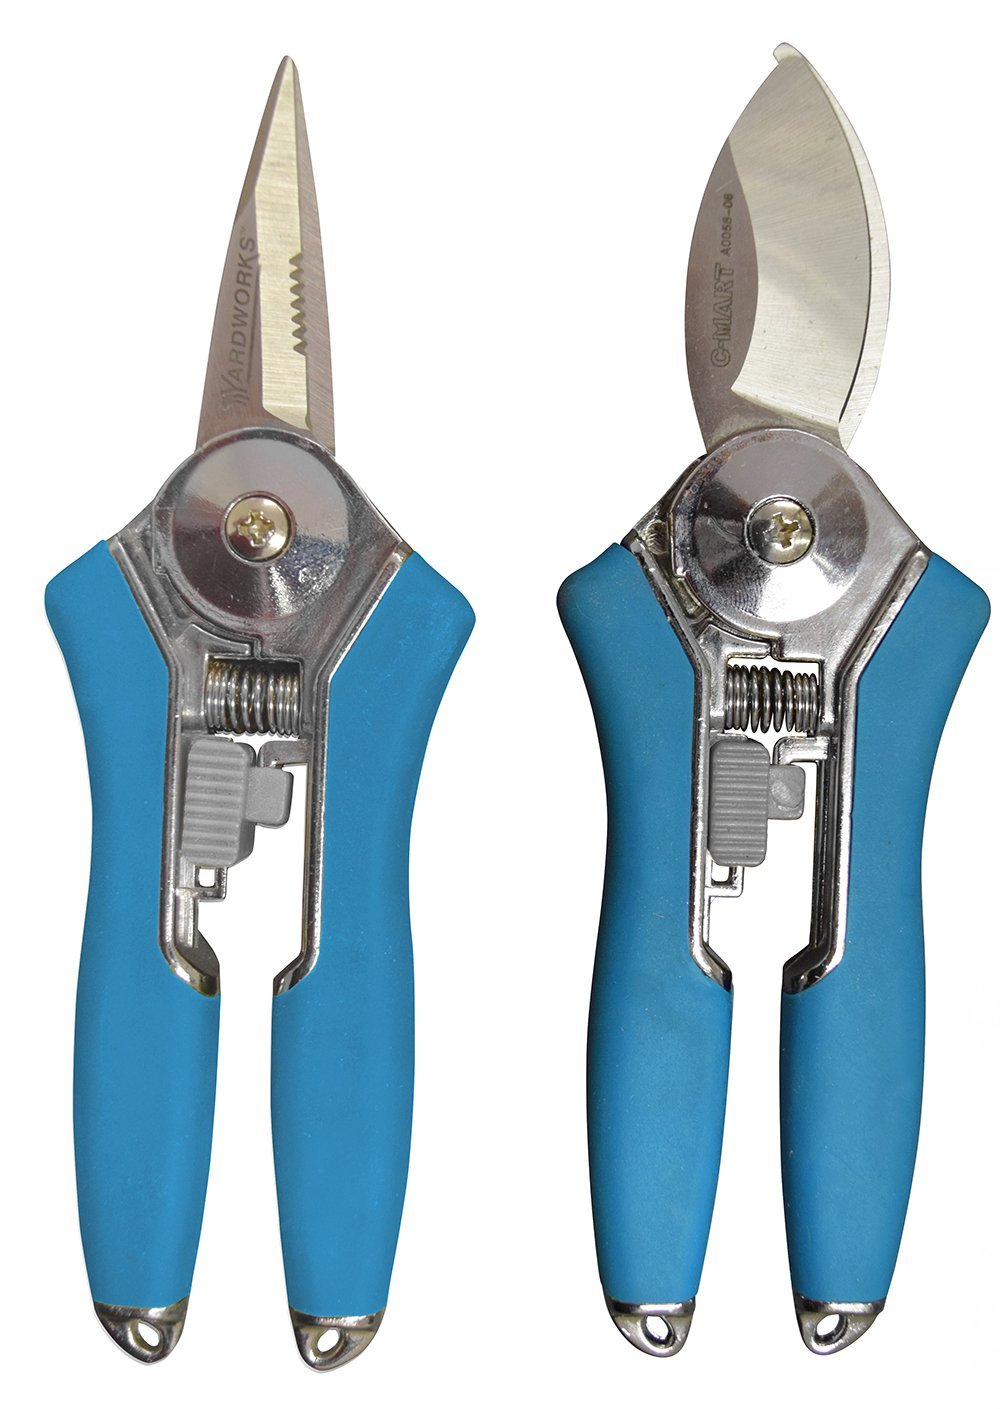 Radius Garden 2-Piece Pruning Tool Set - Includes Floral Shear and Mini Bypass Pruner, Blue